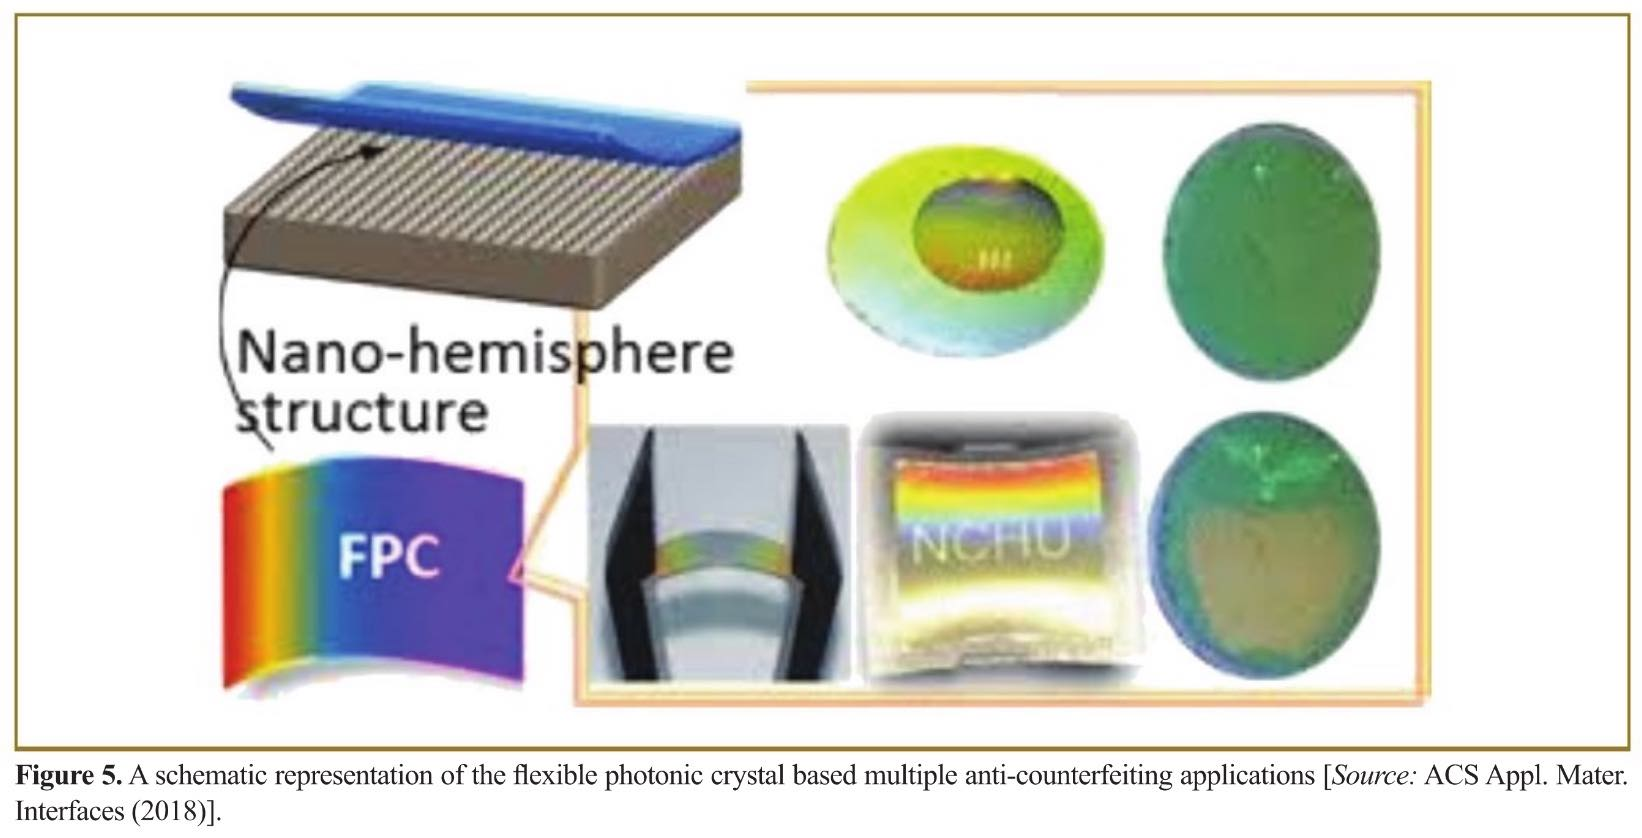 Emergence of Flexible Photonic Crystals